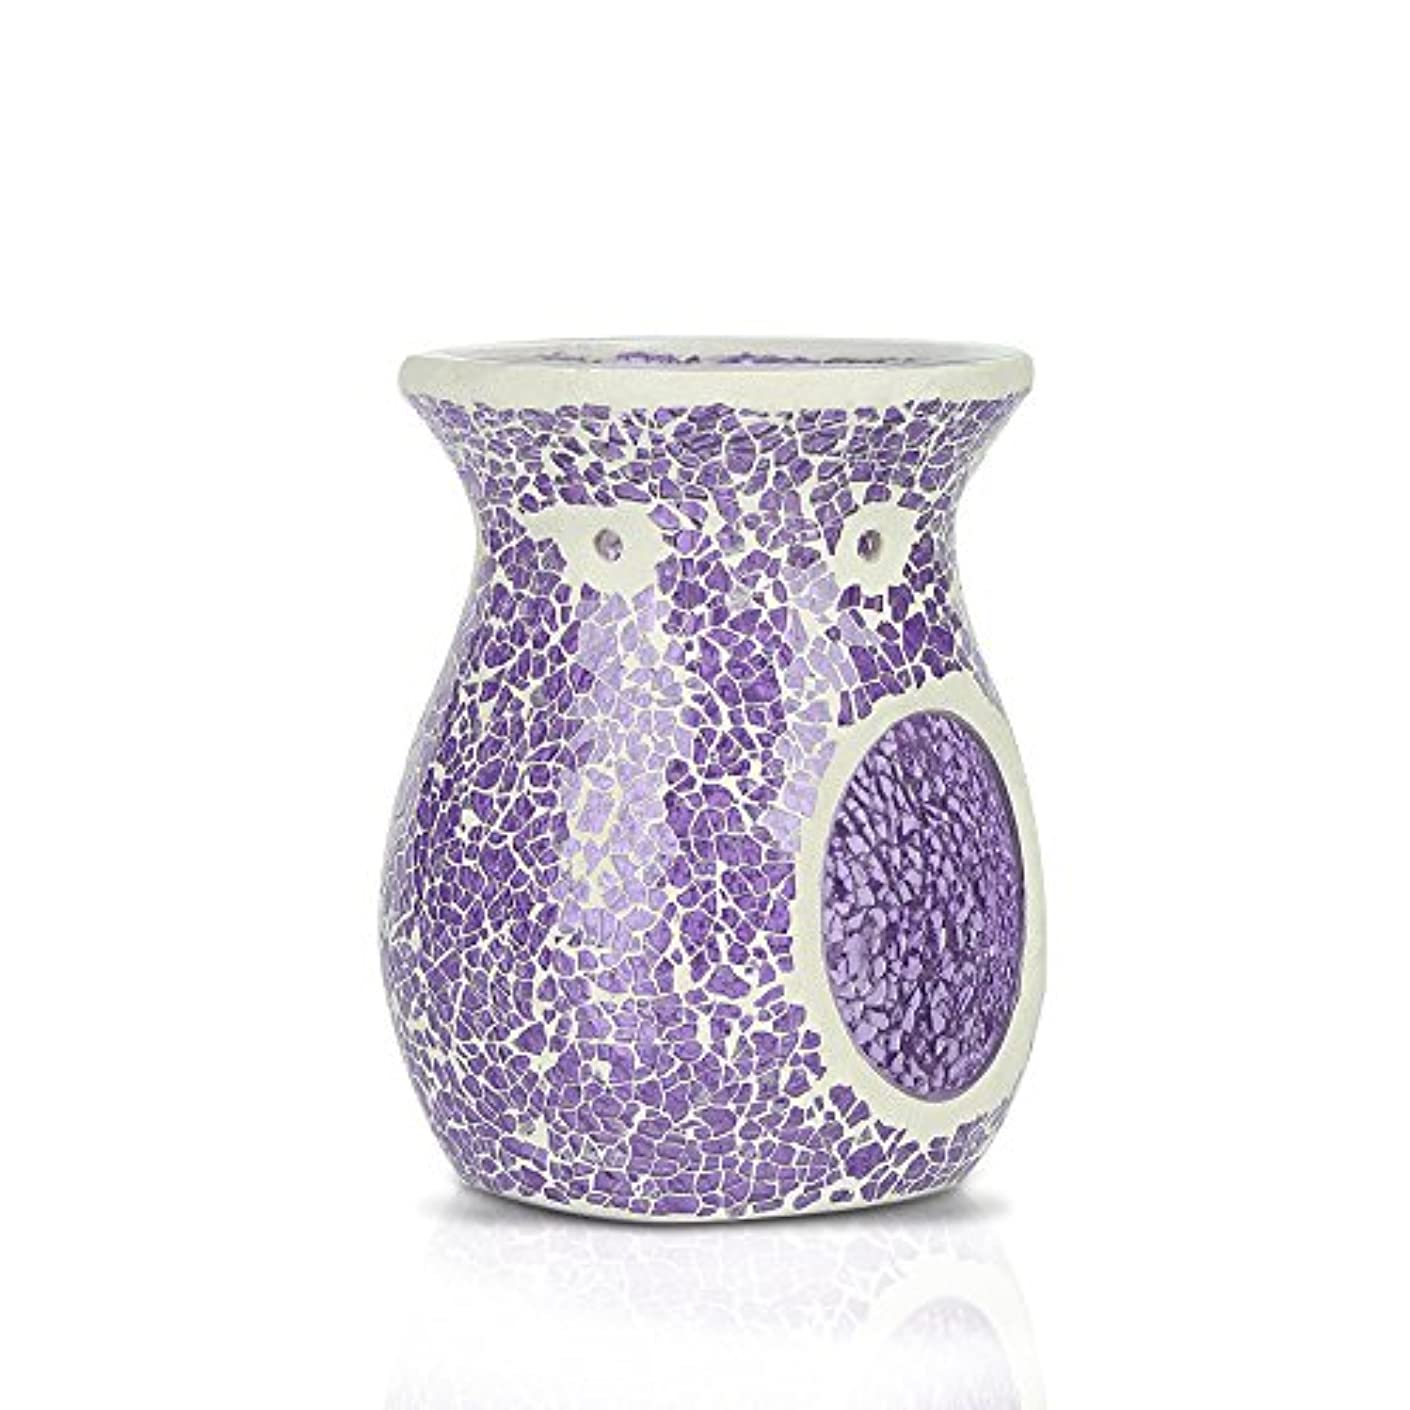 本質的に通知ゲストモザイクオイルバーナー/ Essential Oil Burner / TealightsモザイクワックスMelt / Aromatherapy Essential Oil Burner / Hollow Flower...